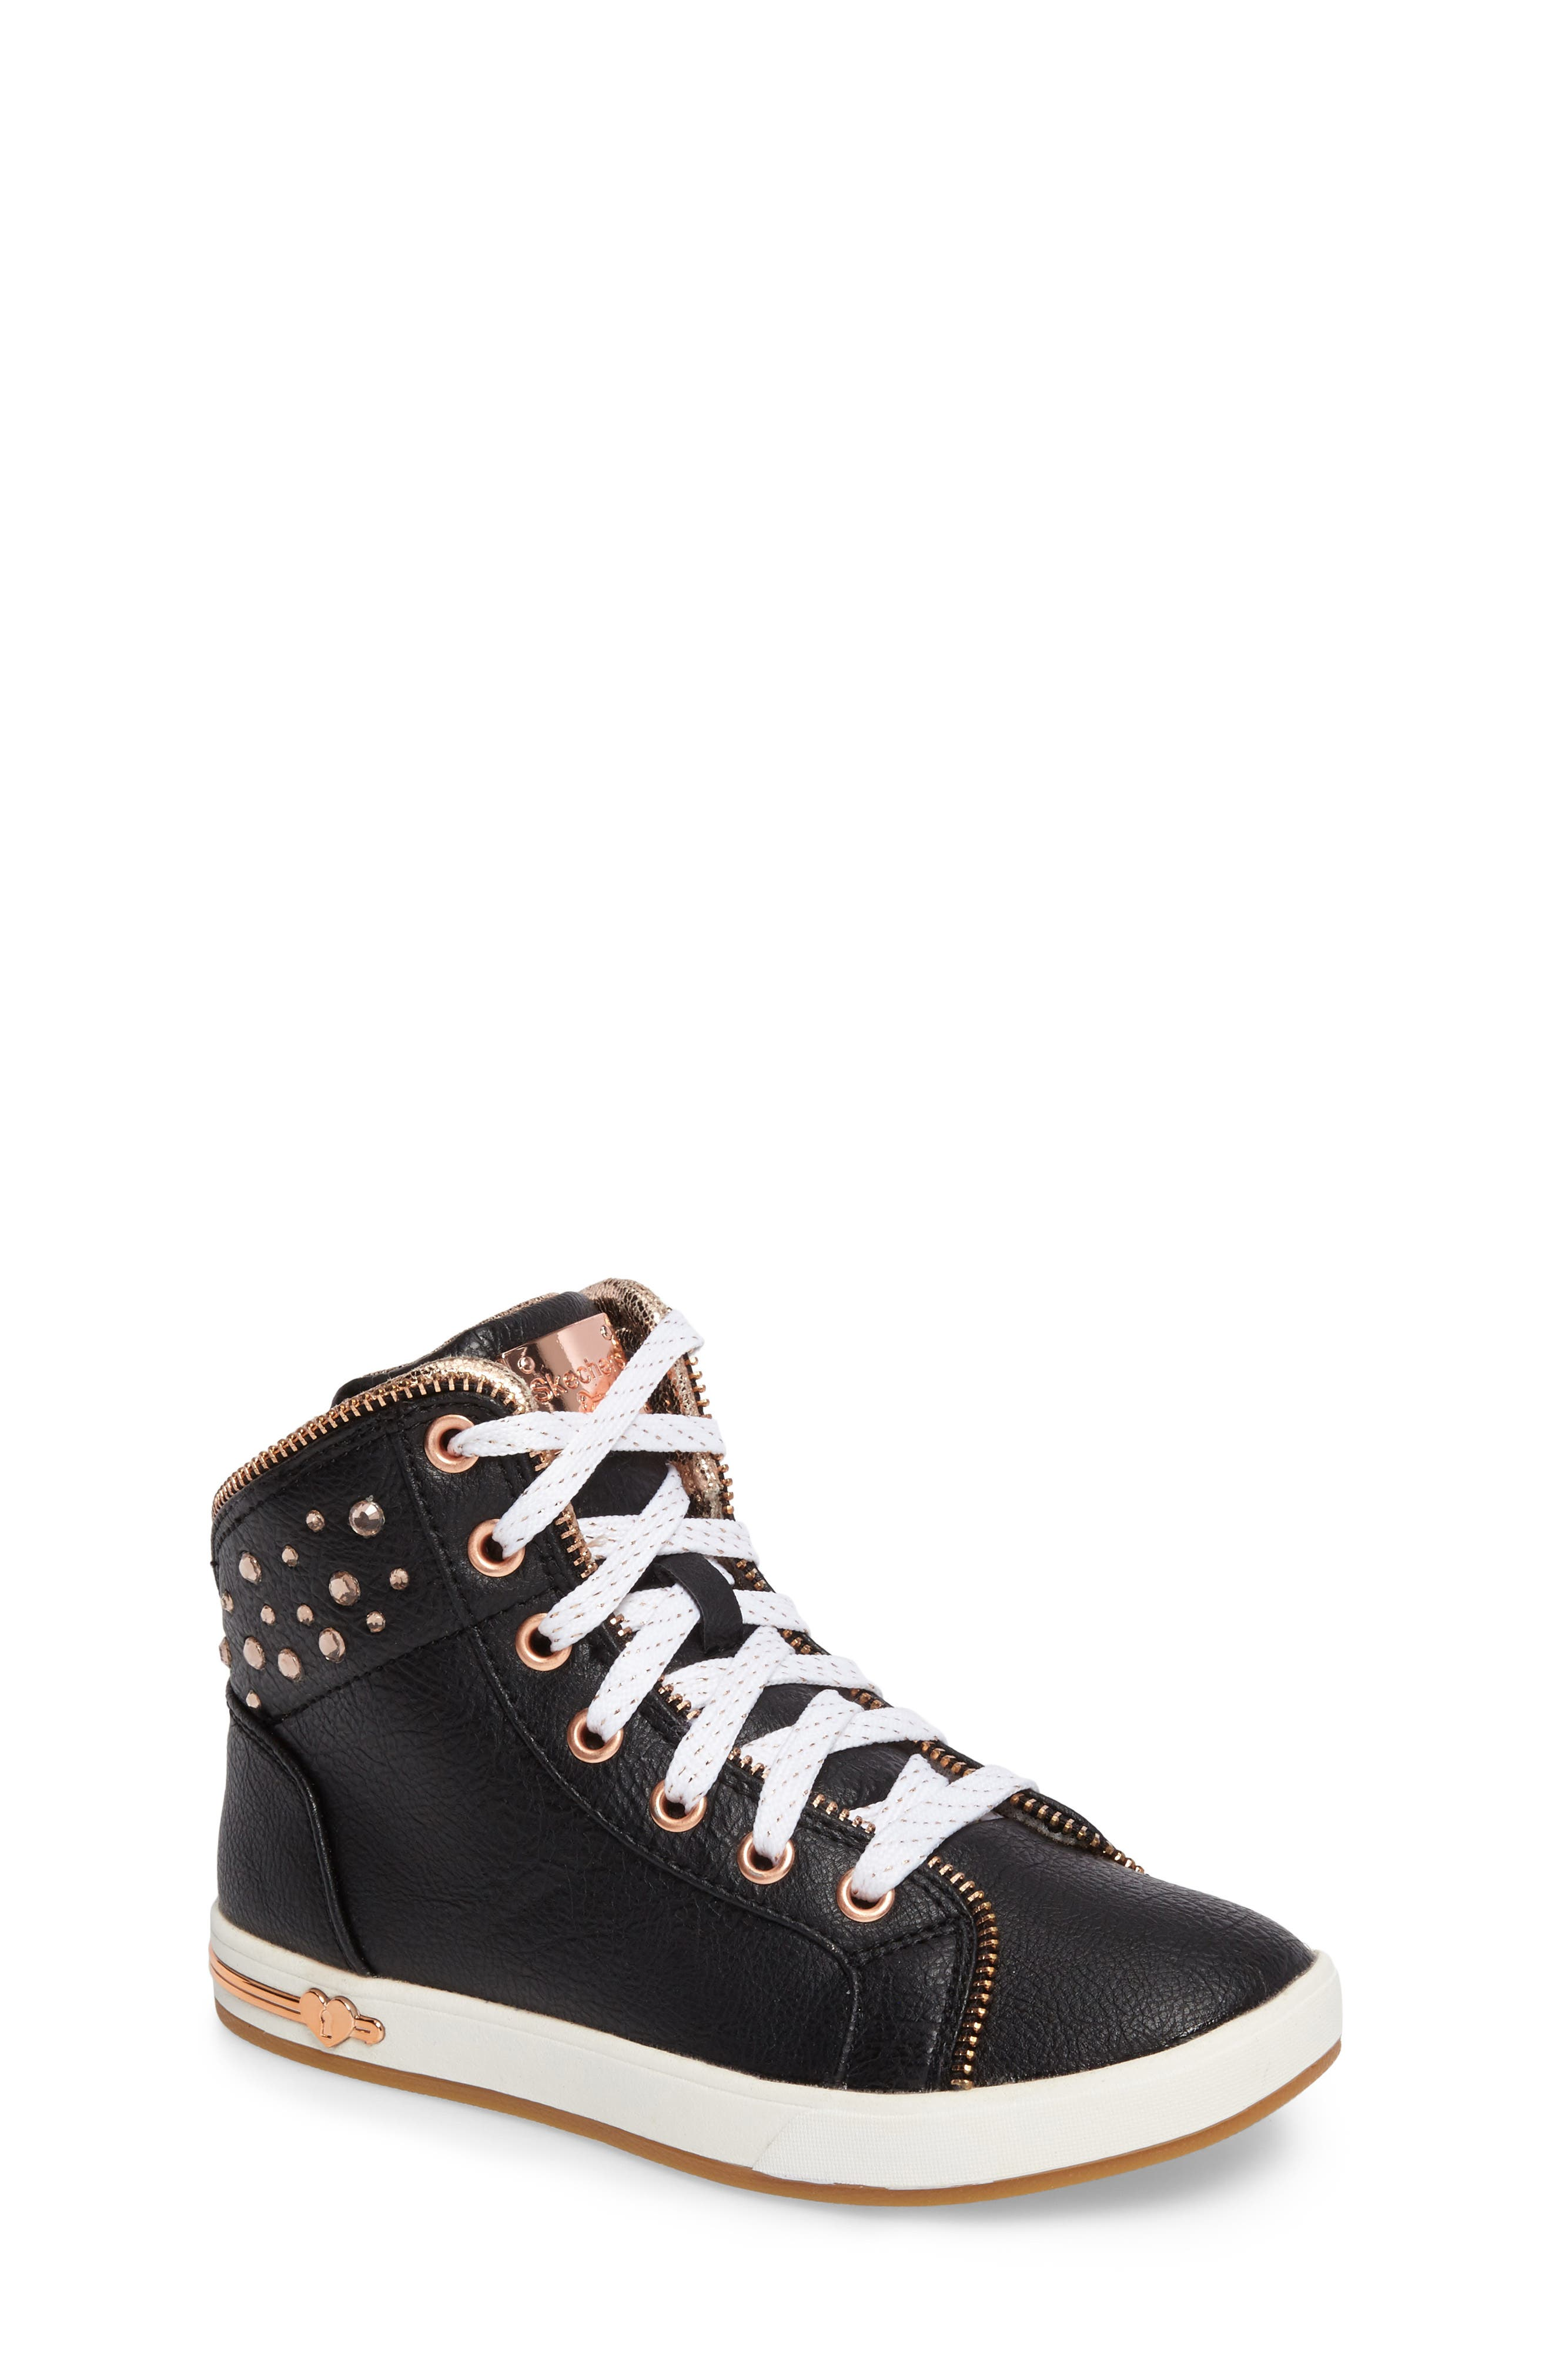 Shoutouts Embellished High Top Sneaker,                         Main,                         color, 001